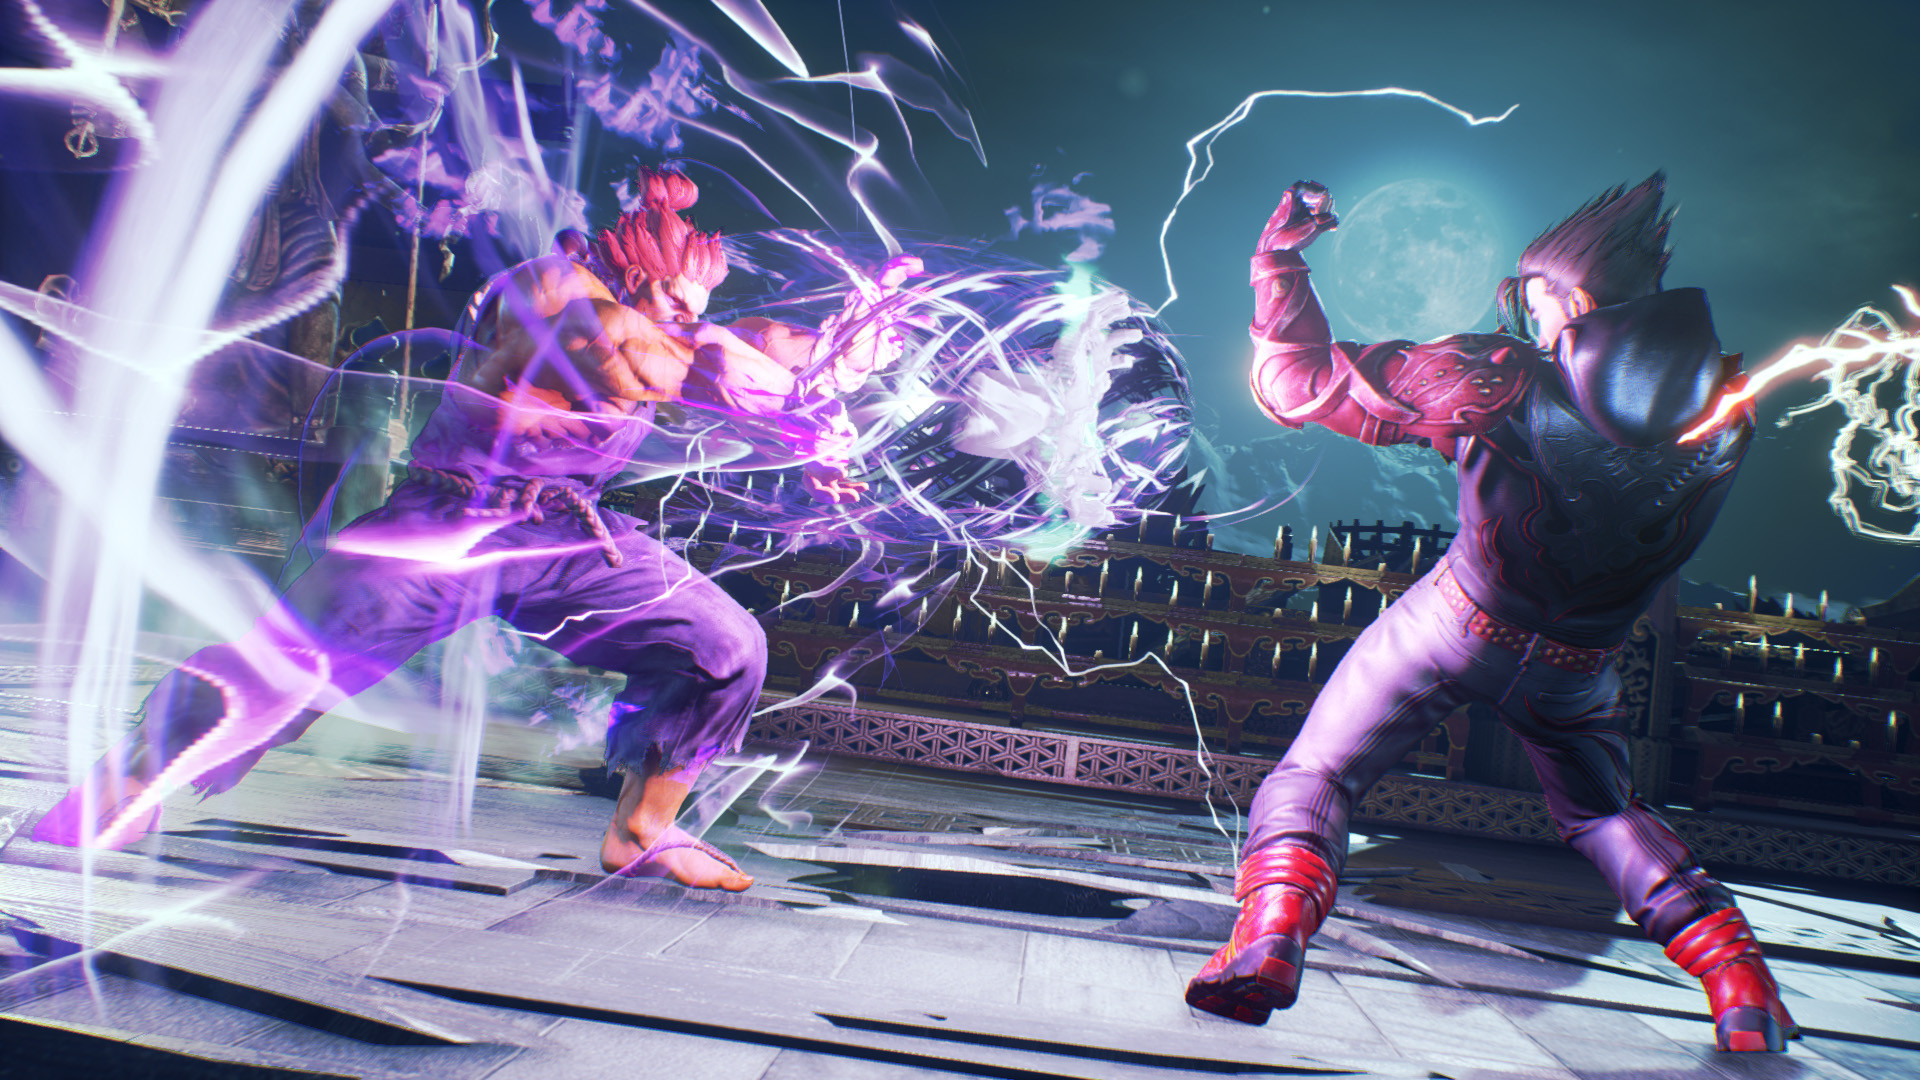 download tekken 7 digital deluxe edition include all dlcs and multiplayer repack by fitgirl singlelink iso rar part kumpulbagi kutucugum partagora